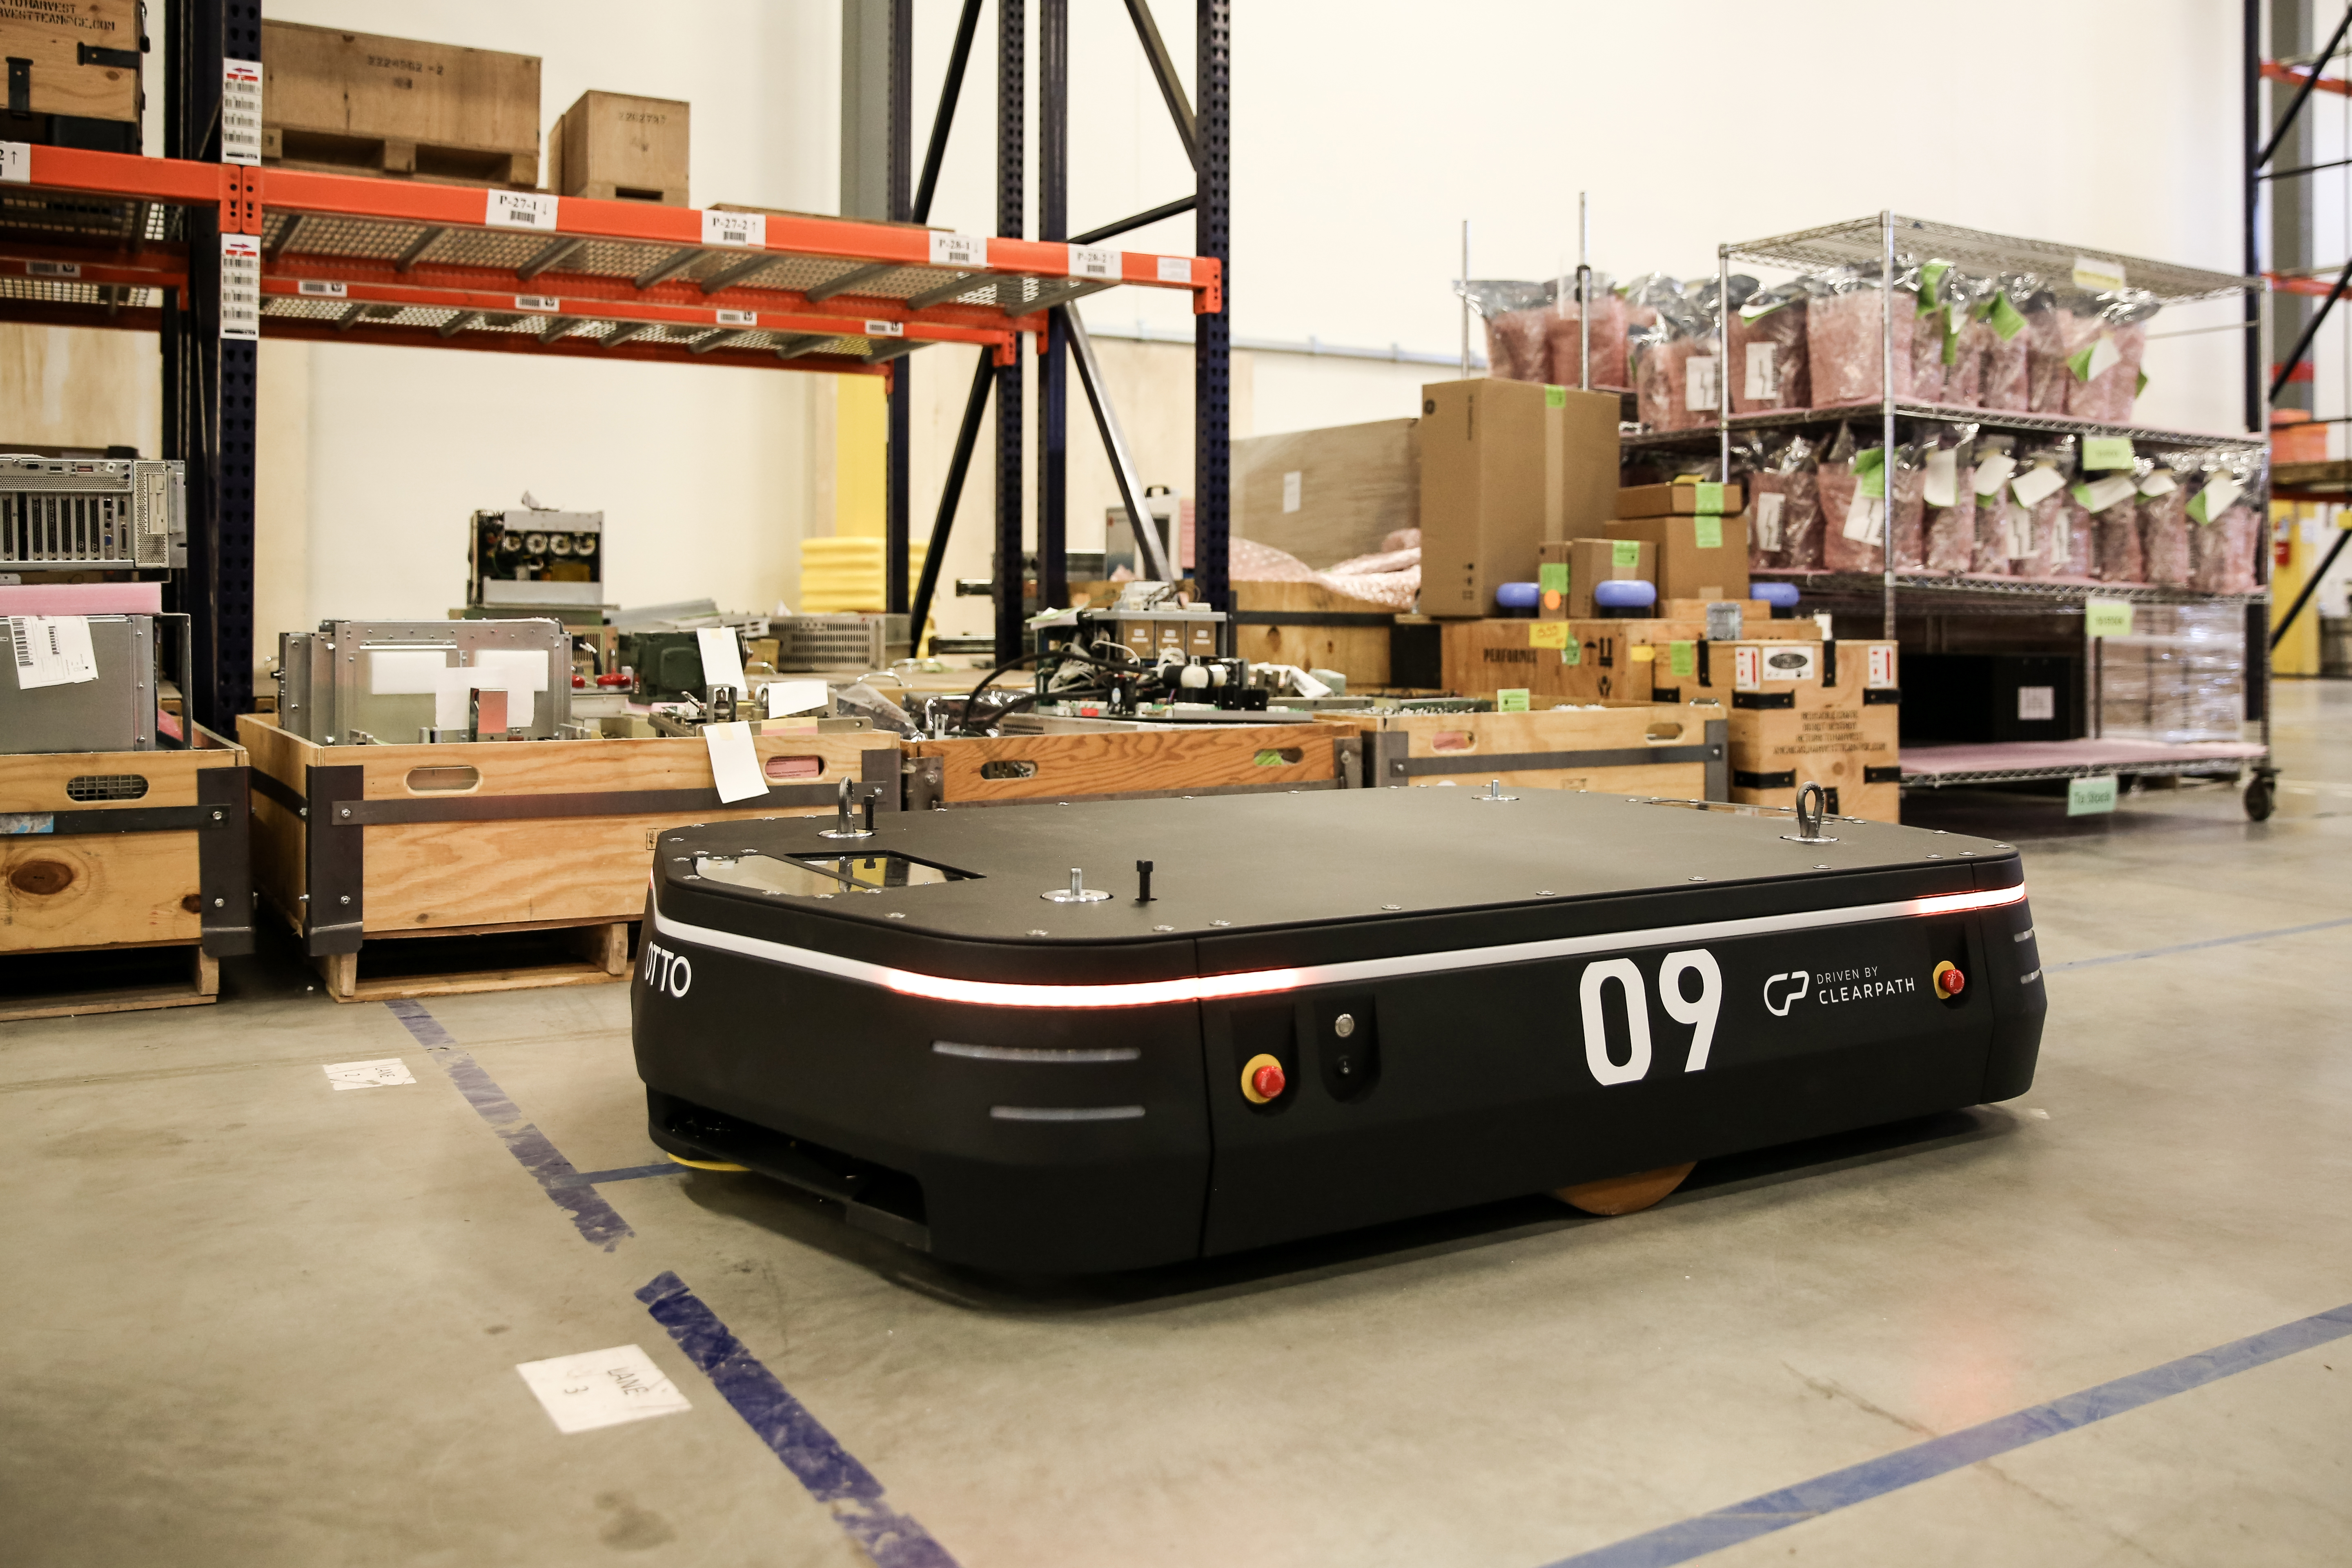 Why Caterpillar and GE Investing In This Self-Driving